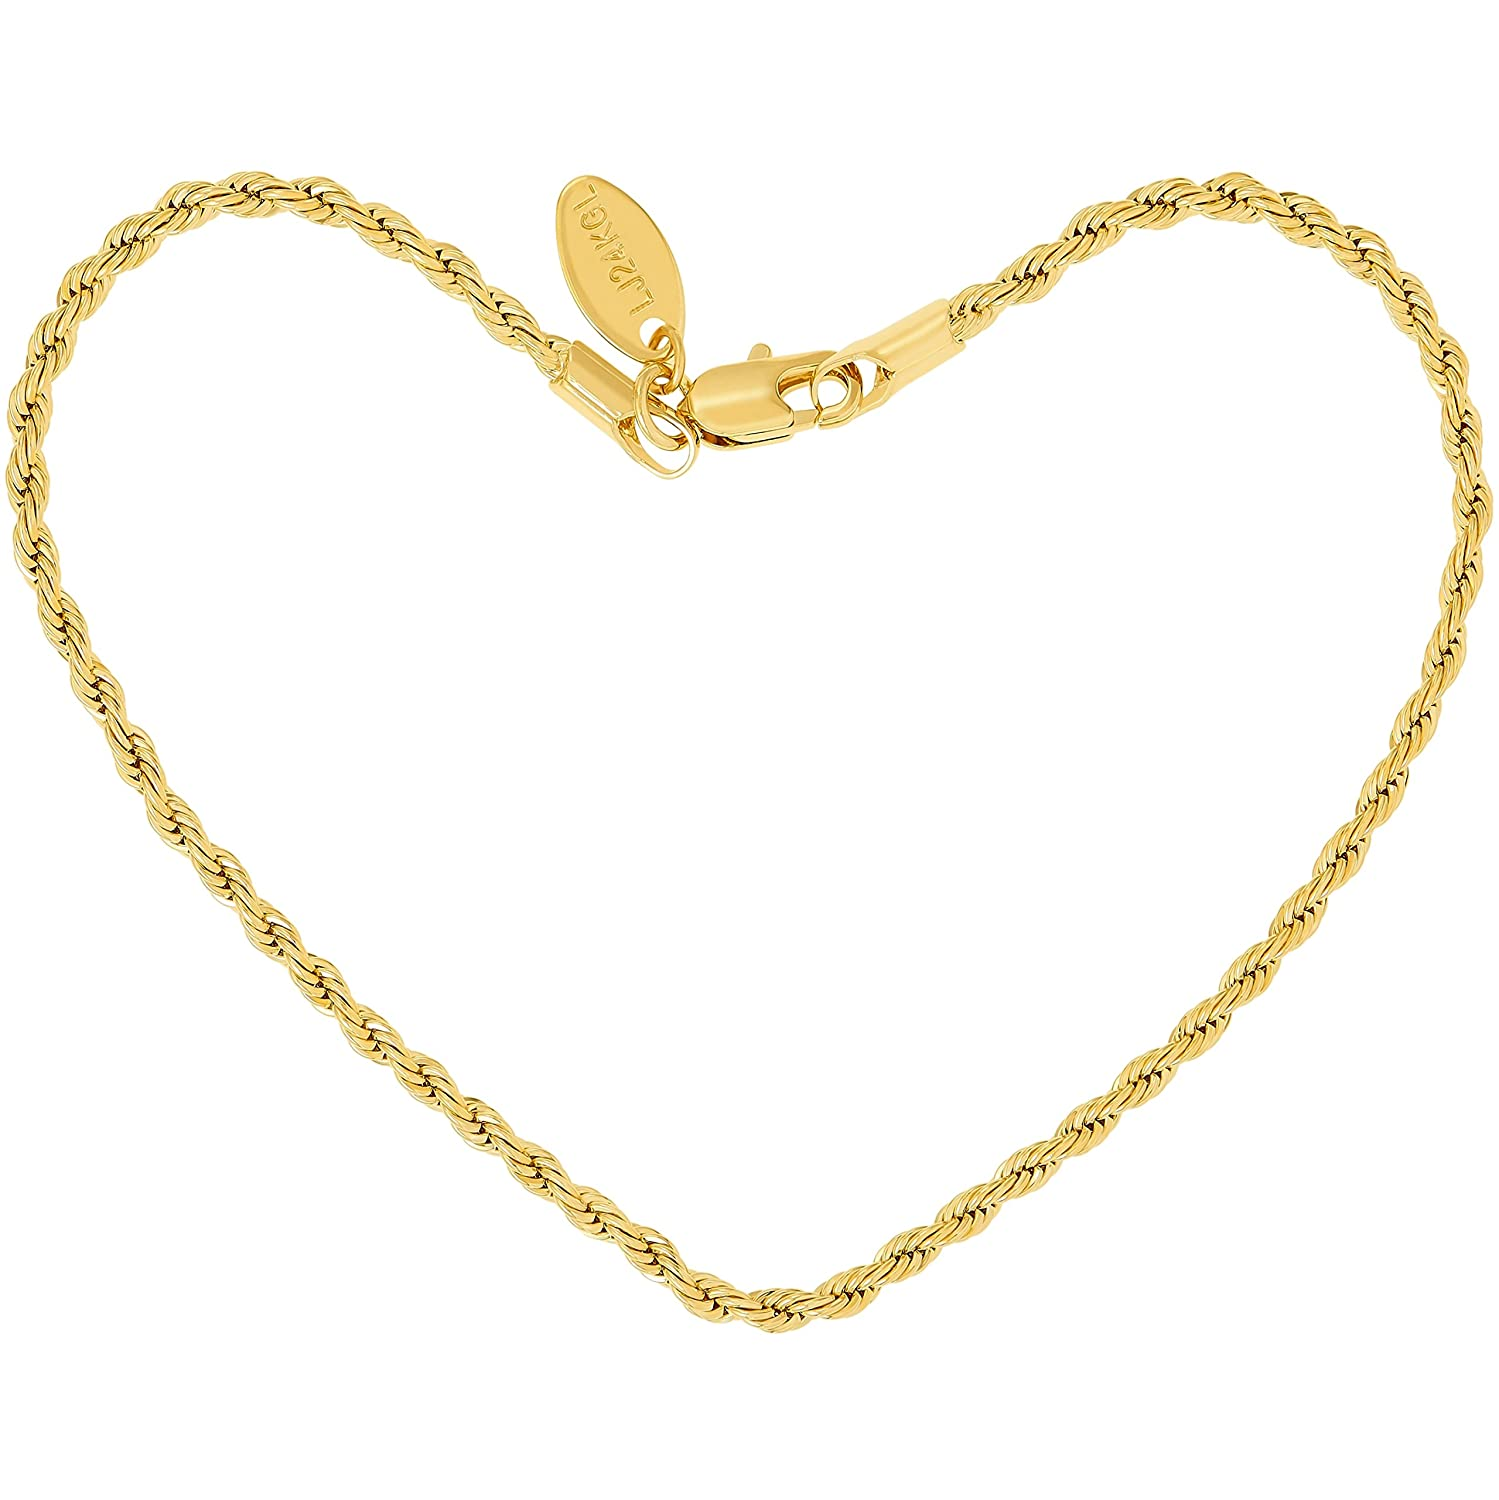 Lifetime Jewelry 2mm Rope Chain Gold Bracelet for Women and Teens - Up to 20X More 24k Plating Than Other Plated Bracelets - Cute Piece of Gold Jewelry for Women and Girls 6.5, 7 and 8 inches Lifetime Products Group 2mm Rope Chain Bracelet